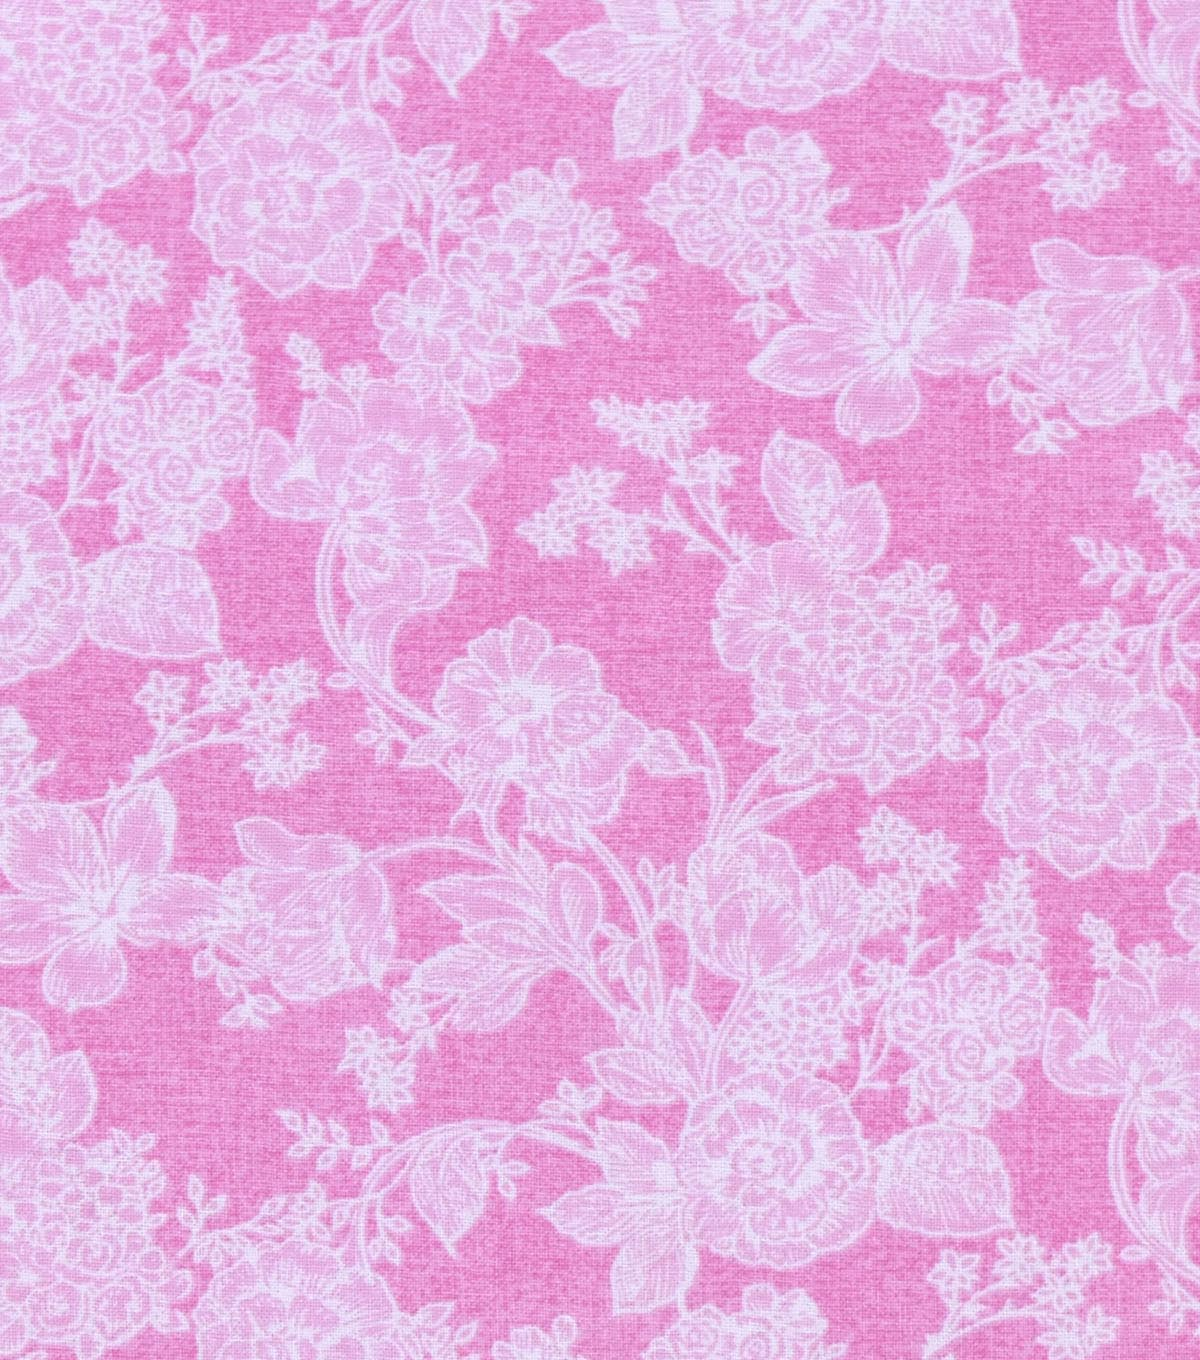 Nursery Flannel Fabric -White Floral